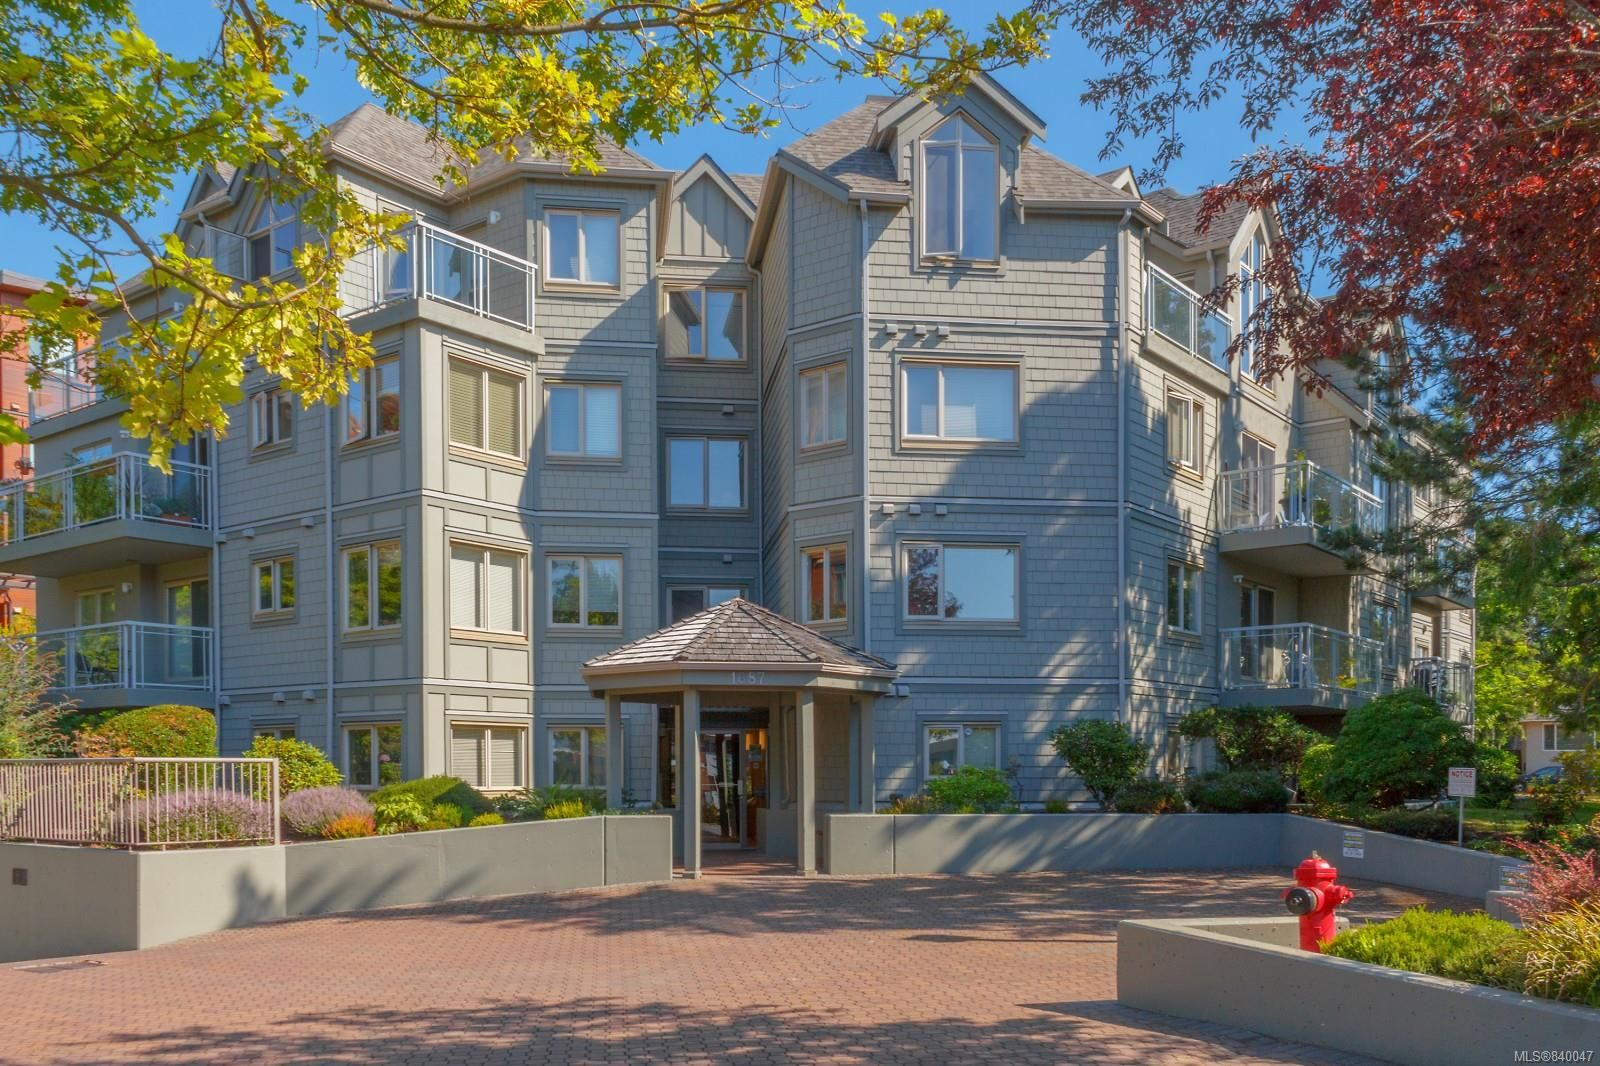 Main Photo: 206 1687 Poplar Ave in Saanich: SE Mt Tolmie Condo for sale (Saanich East)  : MLS®# 840047